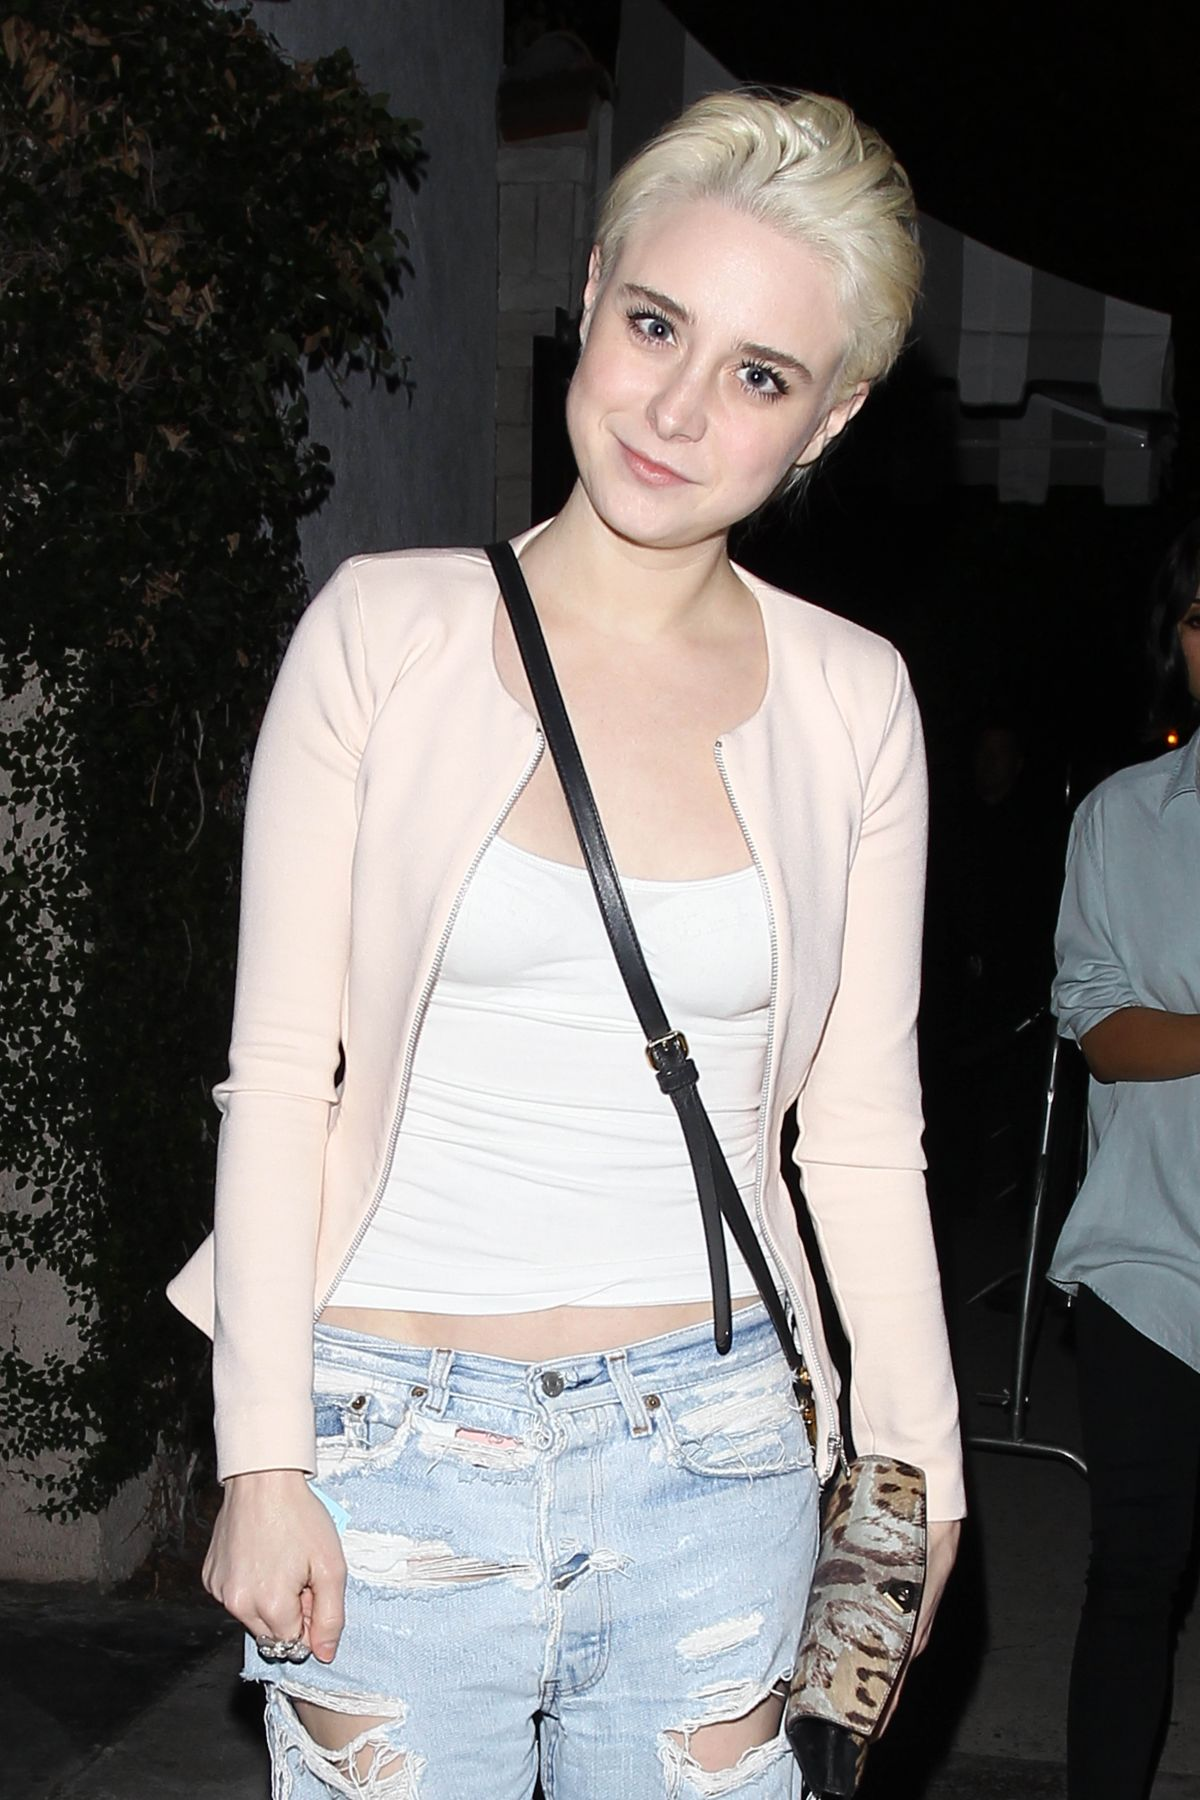 alessandra torresani twitteralessandra torresani instagram, alessandra torresani vk, alessandra torresani tyler shield, alessandra torresani the big bang theory, alessandra torresani height weight, alessandra torresani, alessandra torresani tumblr, alessandra torresani caprica, alessandra torresani twitter, alessandra torresani facebook, alessandra torresani malcolm, alessandra torresani imdb, alessandra torresani workaholics, alessandra torresani nudography, alessandra torresani american horror story